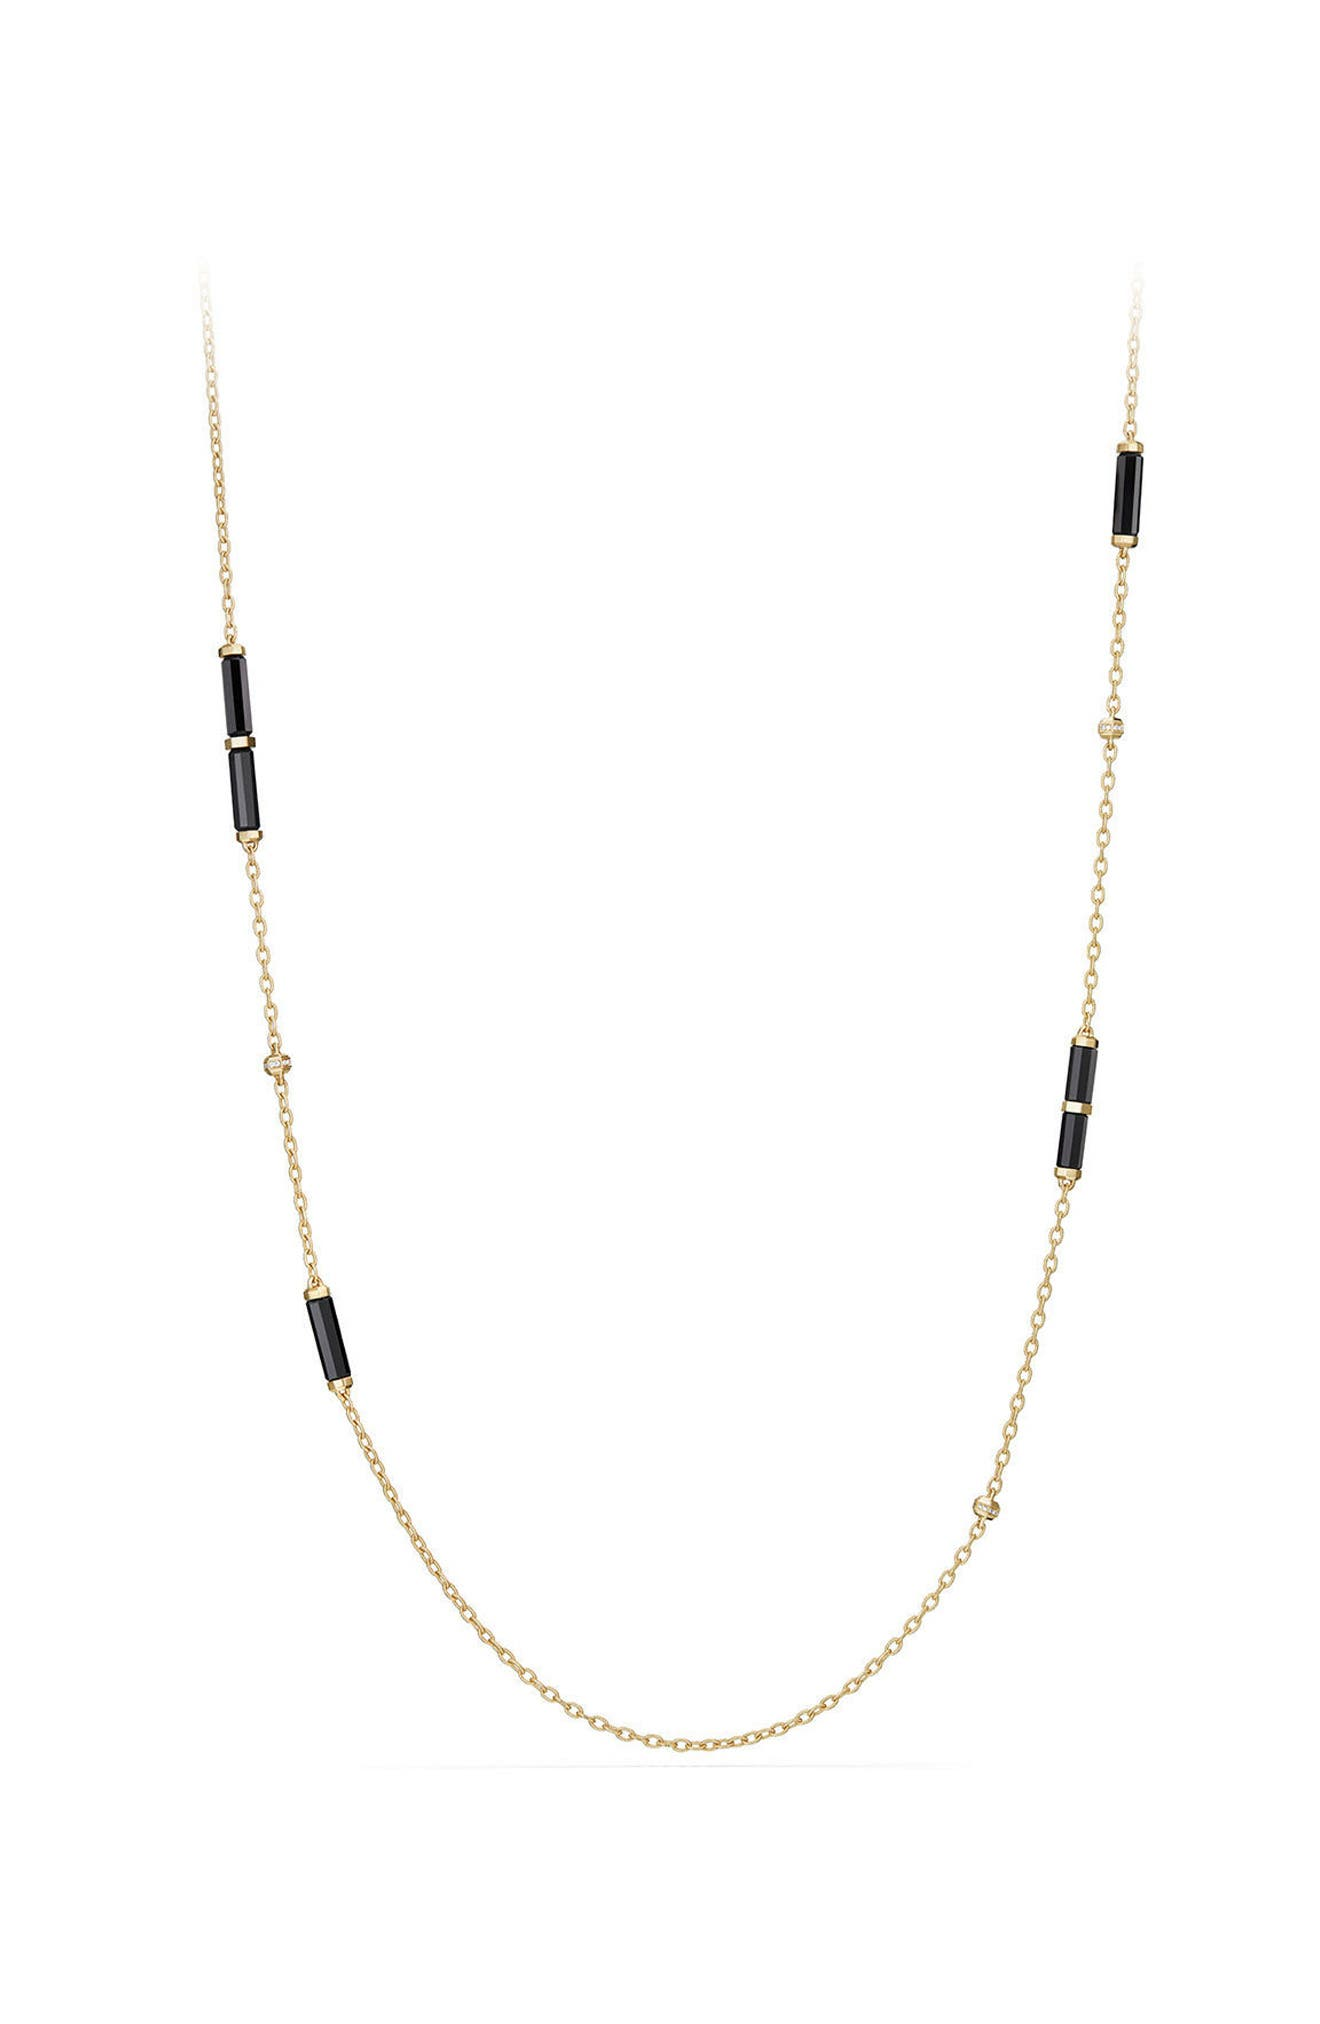 Barrels Long Station Necklace with Diamonds,                             Main thumbnail 1, color,                             YELLOW GOLD